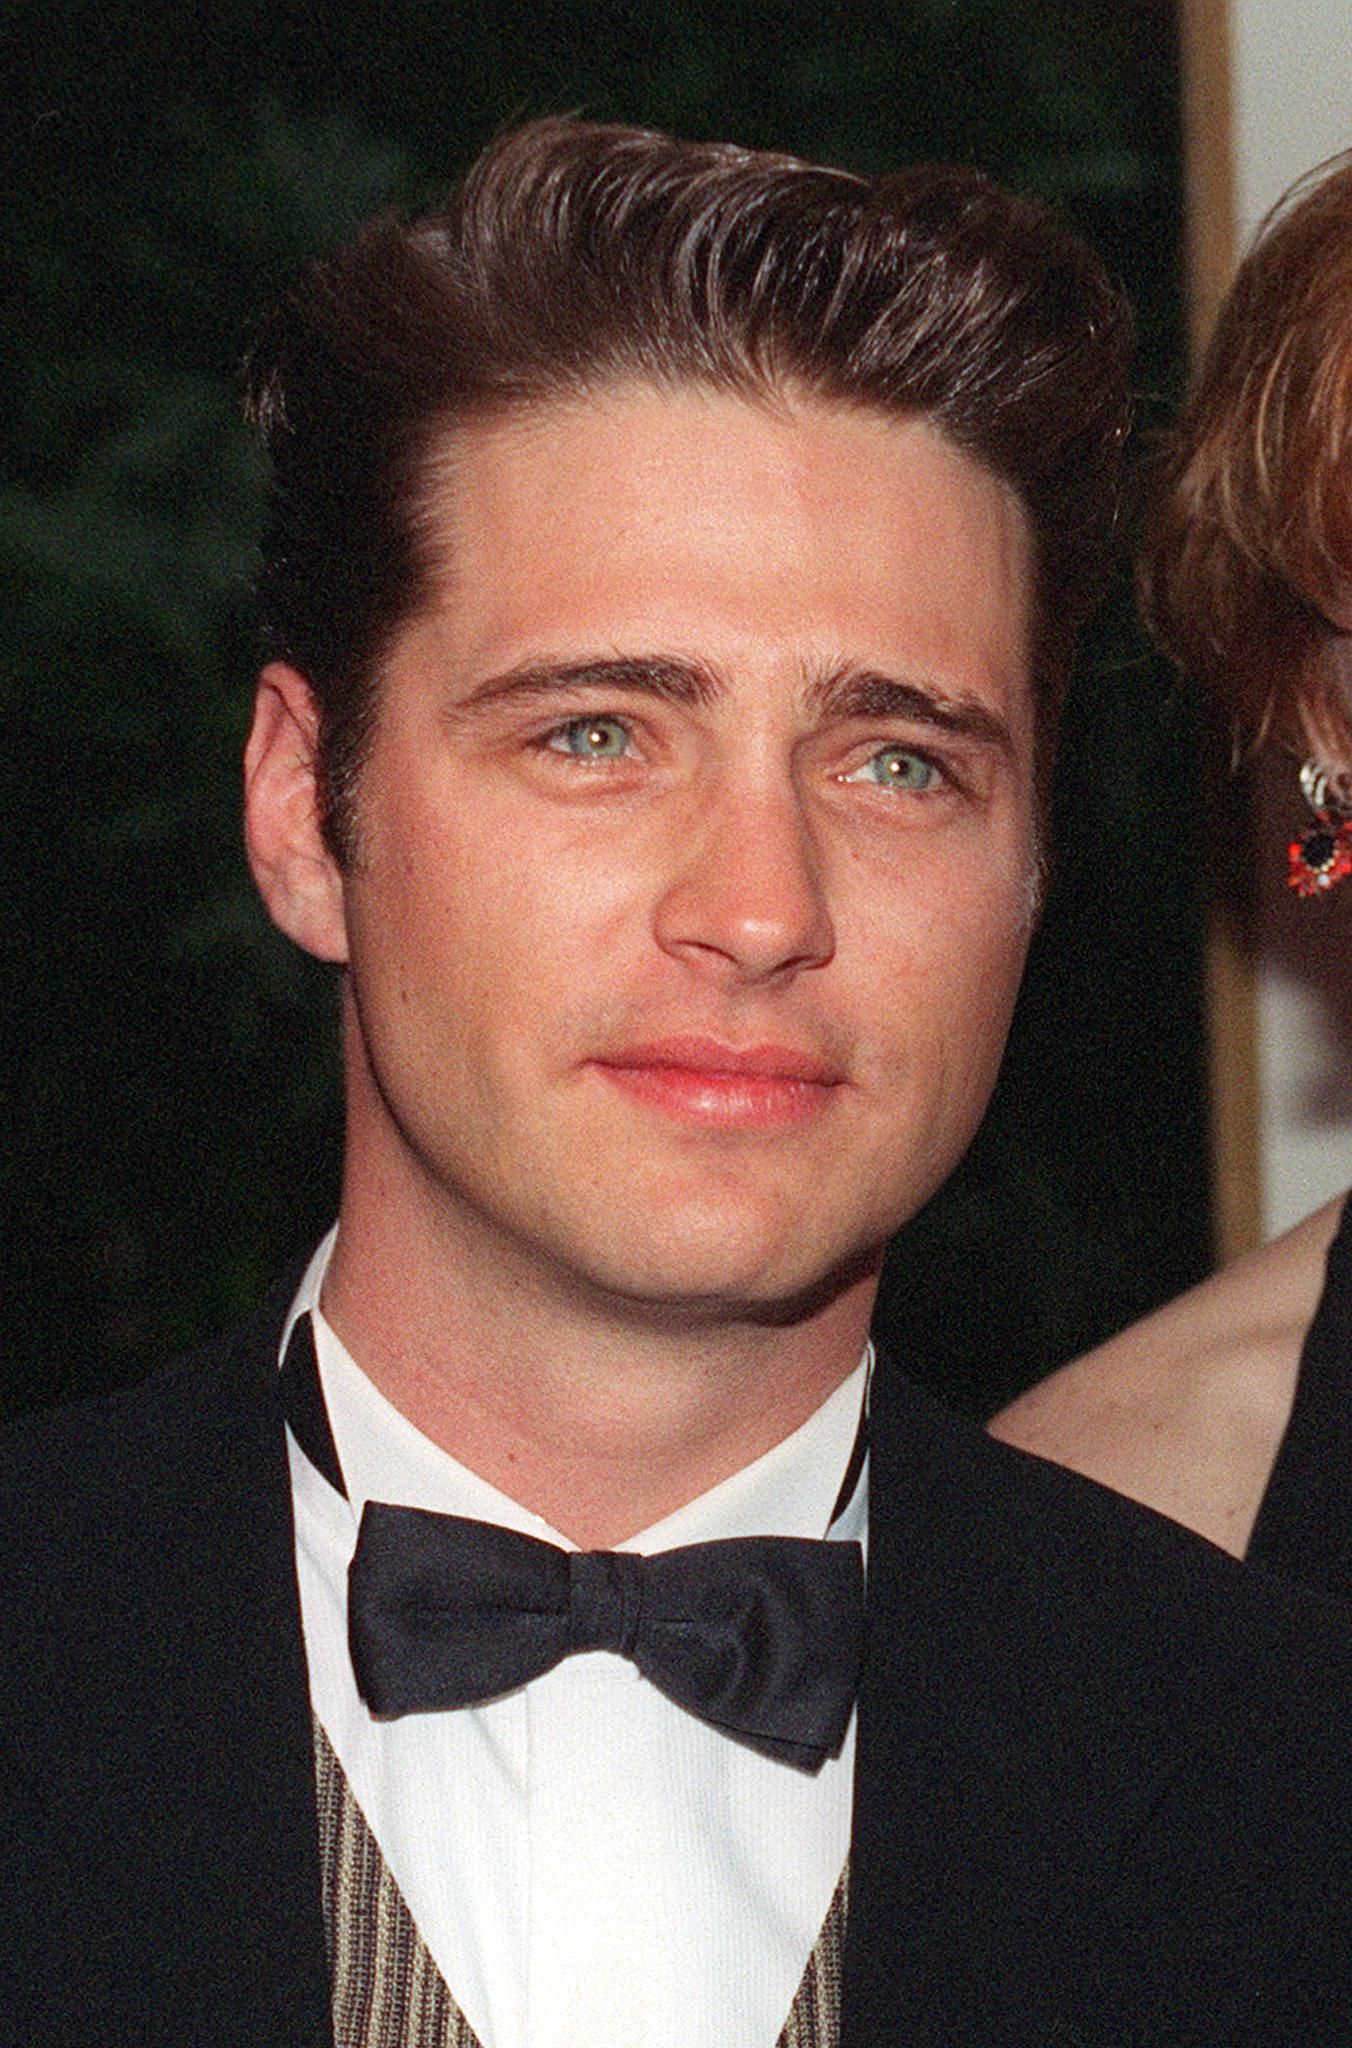 jason priestley moviesjason priestley young, jason priestley wife, jason priestley beverly hills 90210, jason priestley 2017, jason priestley sister, jason priestley movies, jason priestley 90210, jason priestley i drove all night, jason priestley facebook, jason priestley brad pitt, jason priestley tumblr, jason priestley sunglasses, jason priestley twitter, jason priestley psych, jason priestley john hurt, jason priestley instagram, jason priestley 2016, jason priestley height, jason priestley cigarette, jason priestley net worth